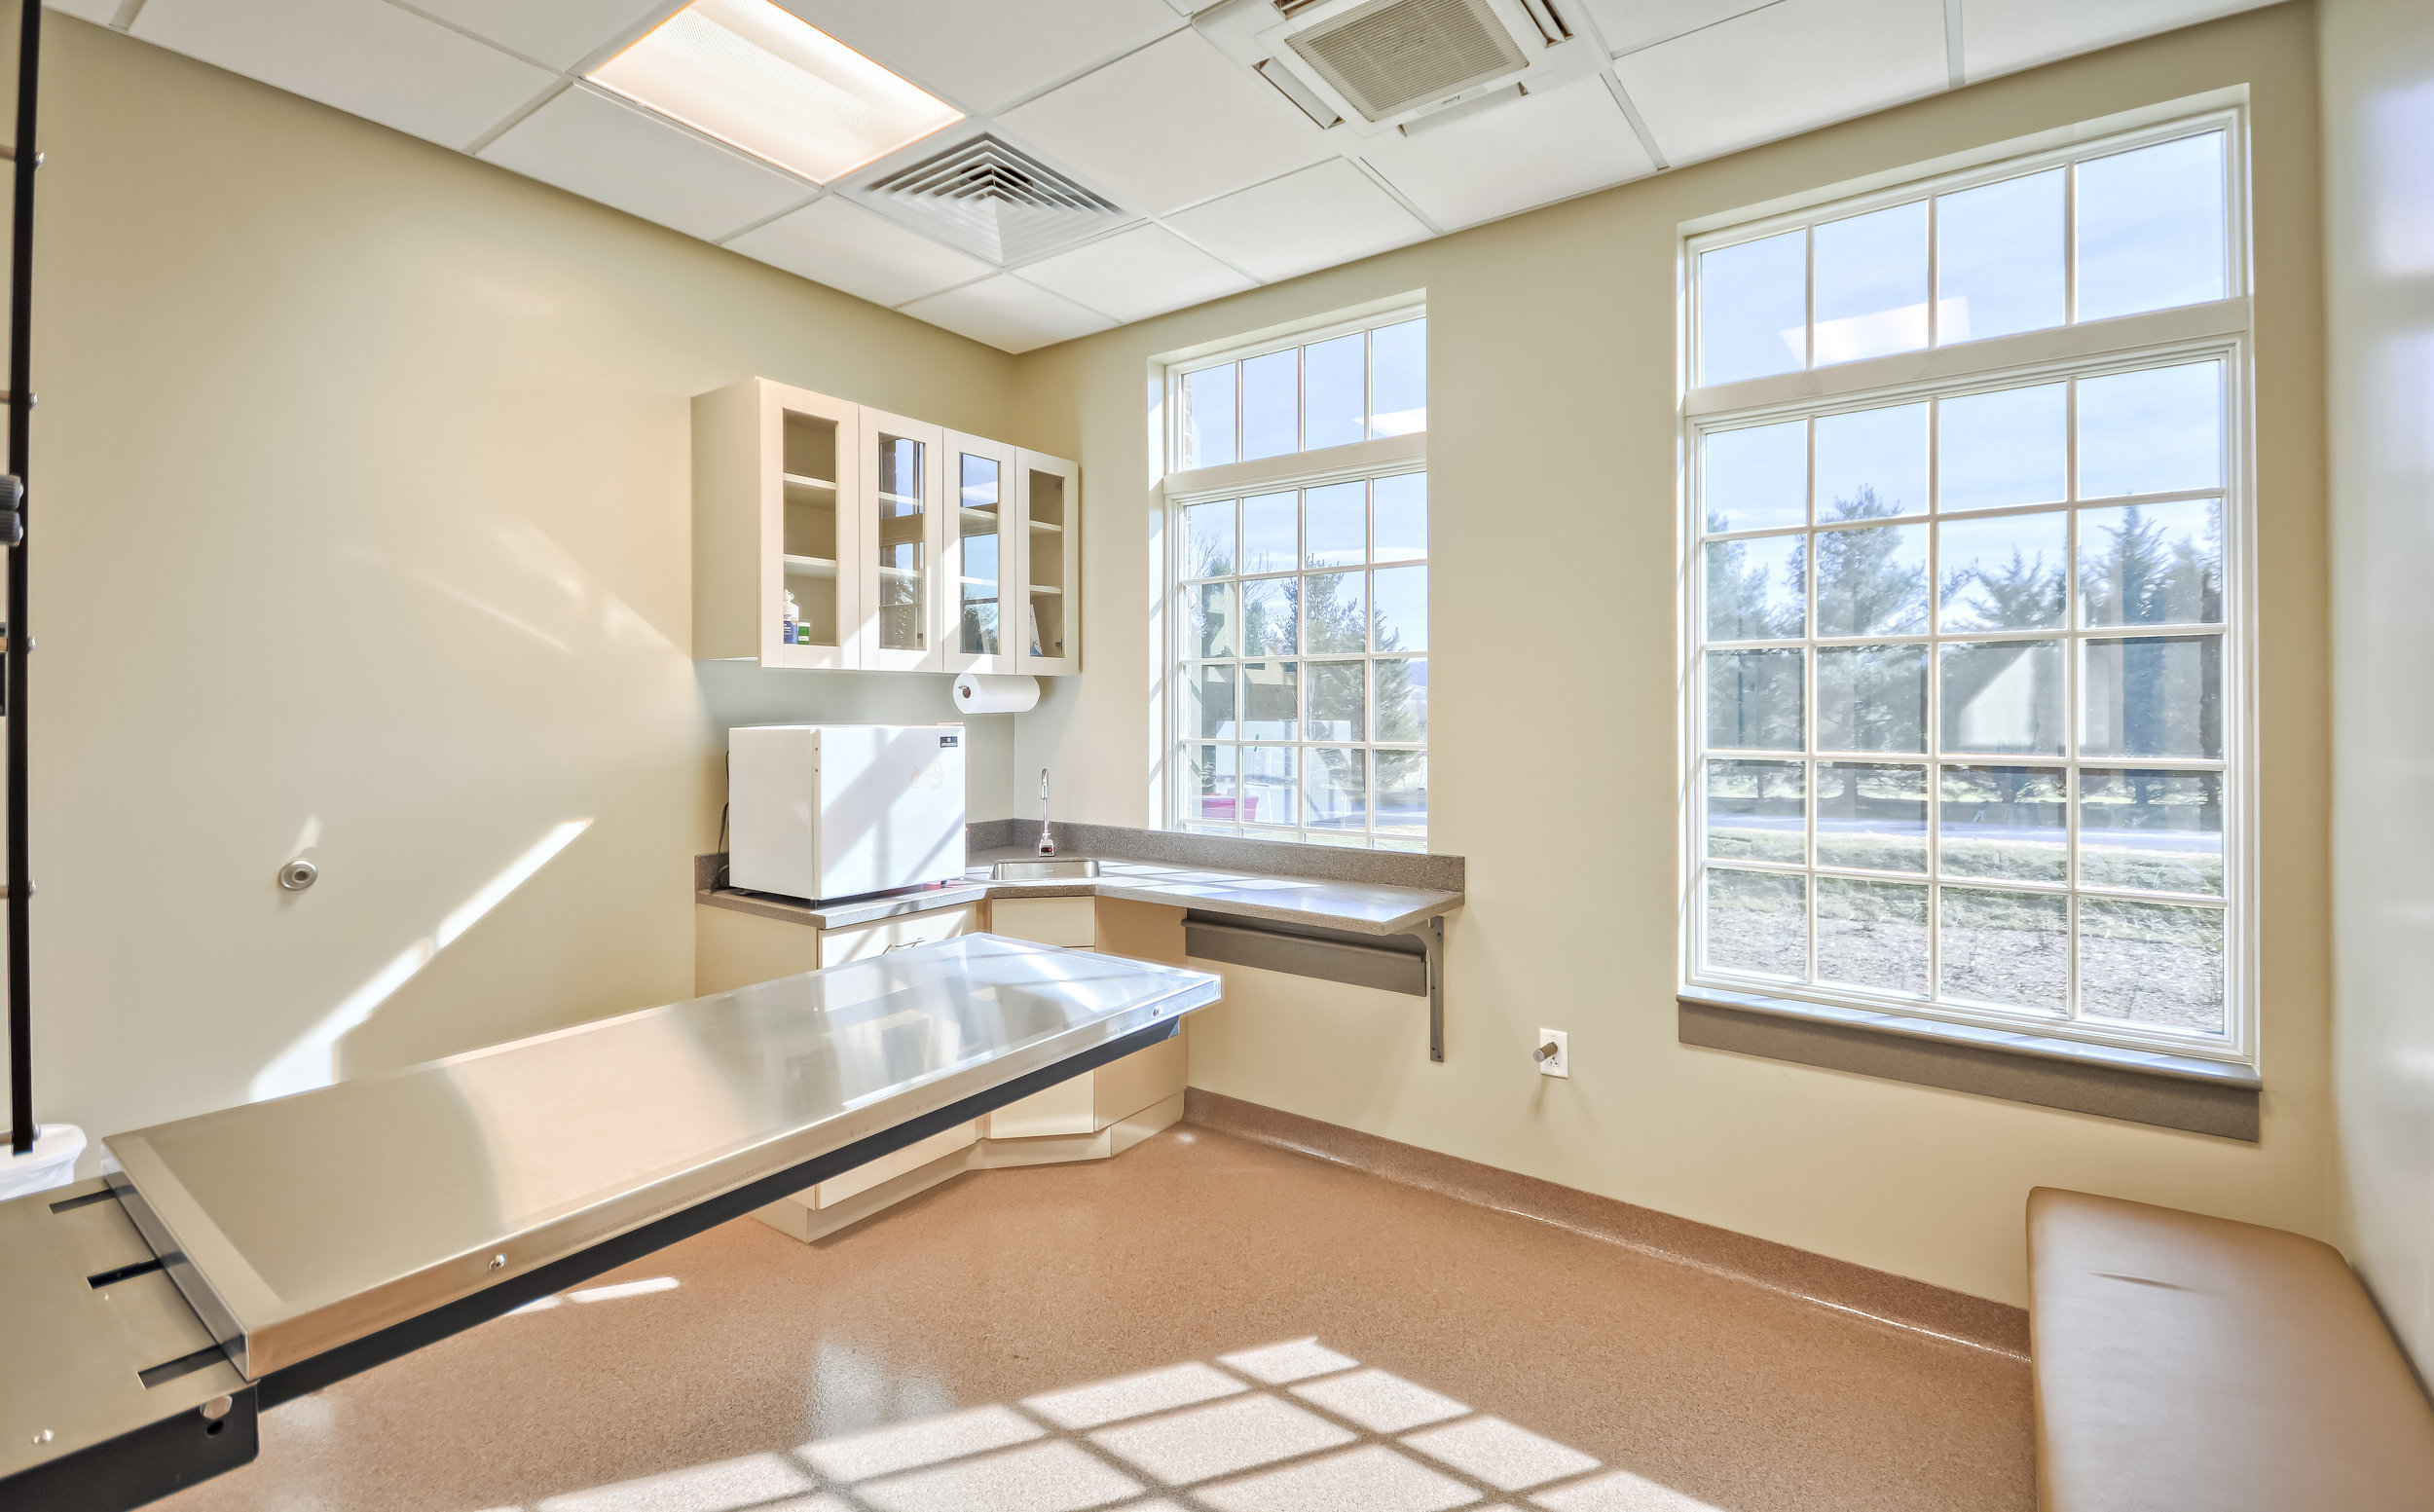 veterinarian frederick md examination room for large dogs